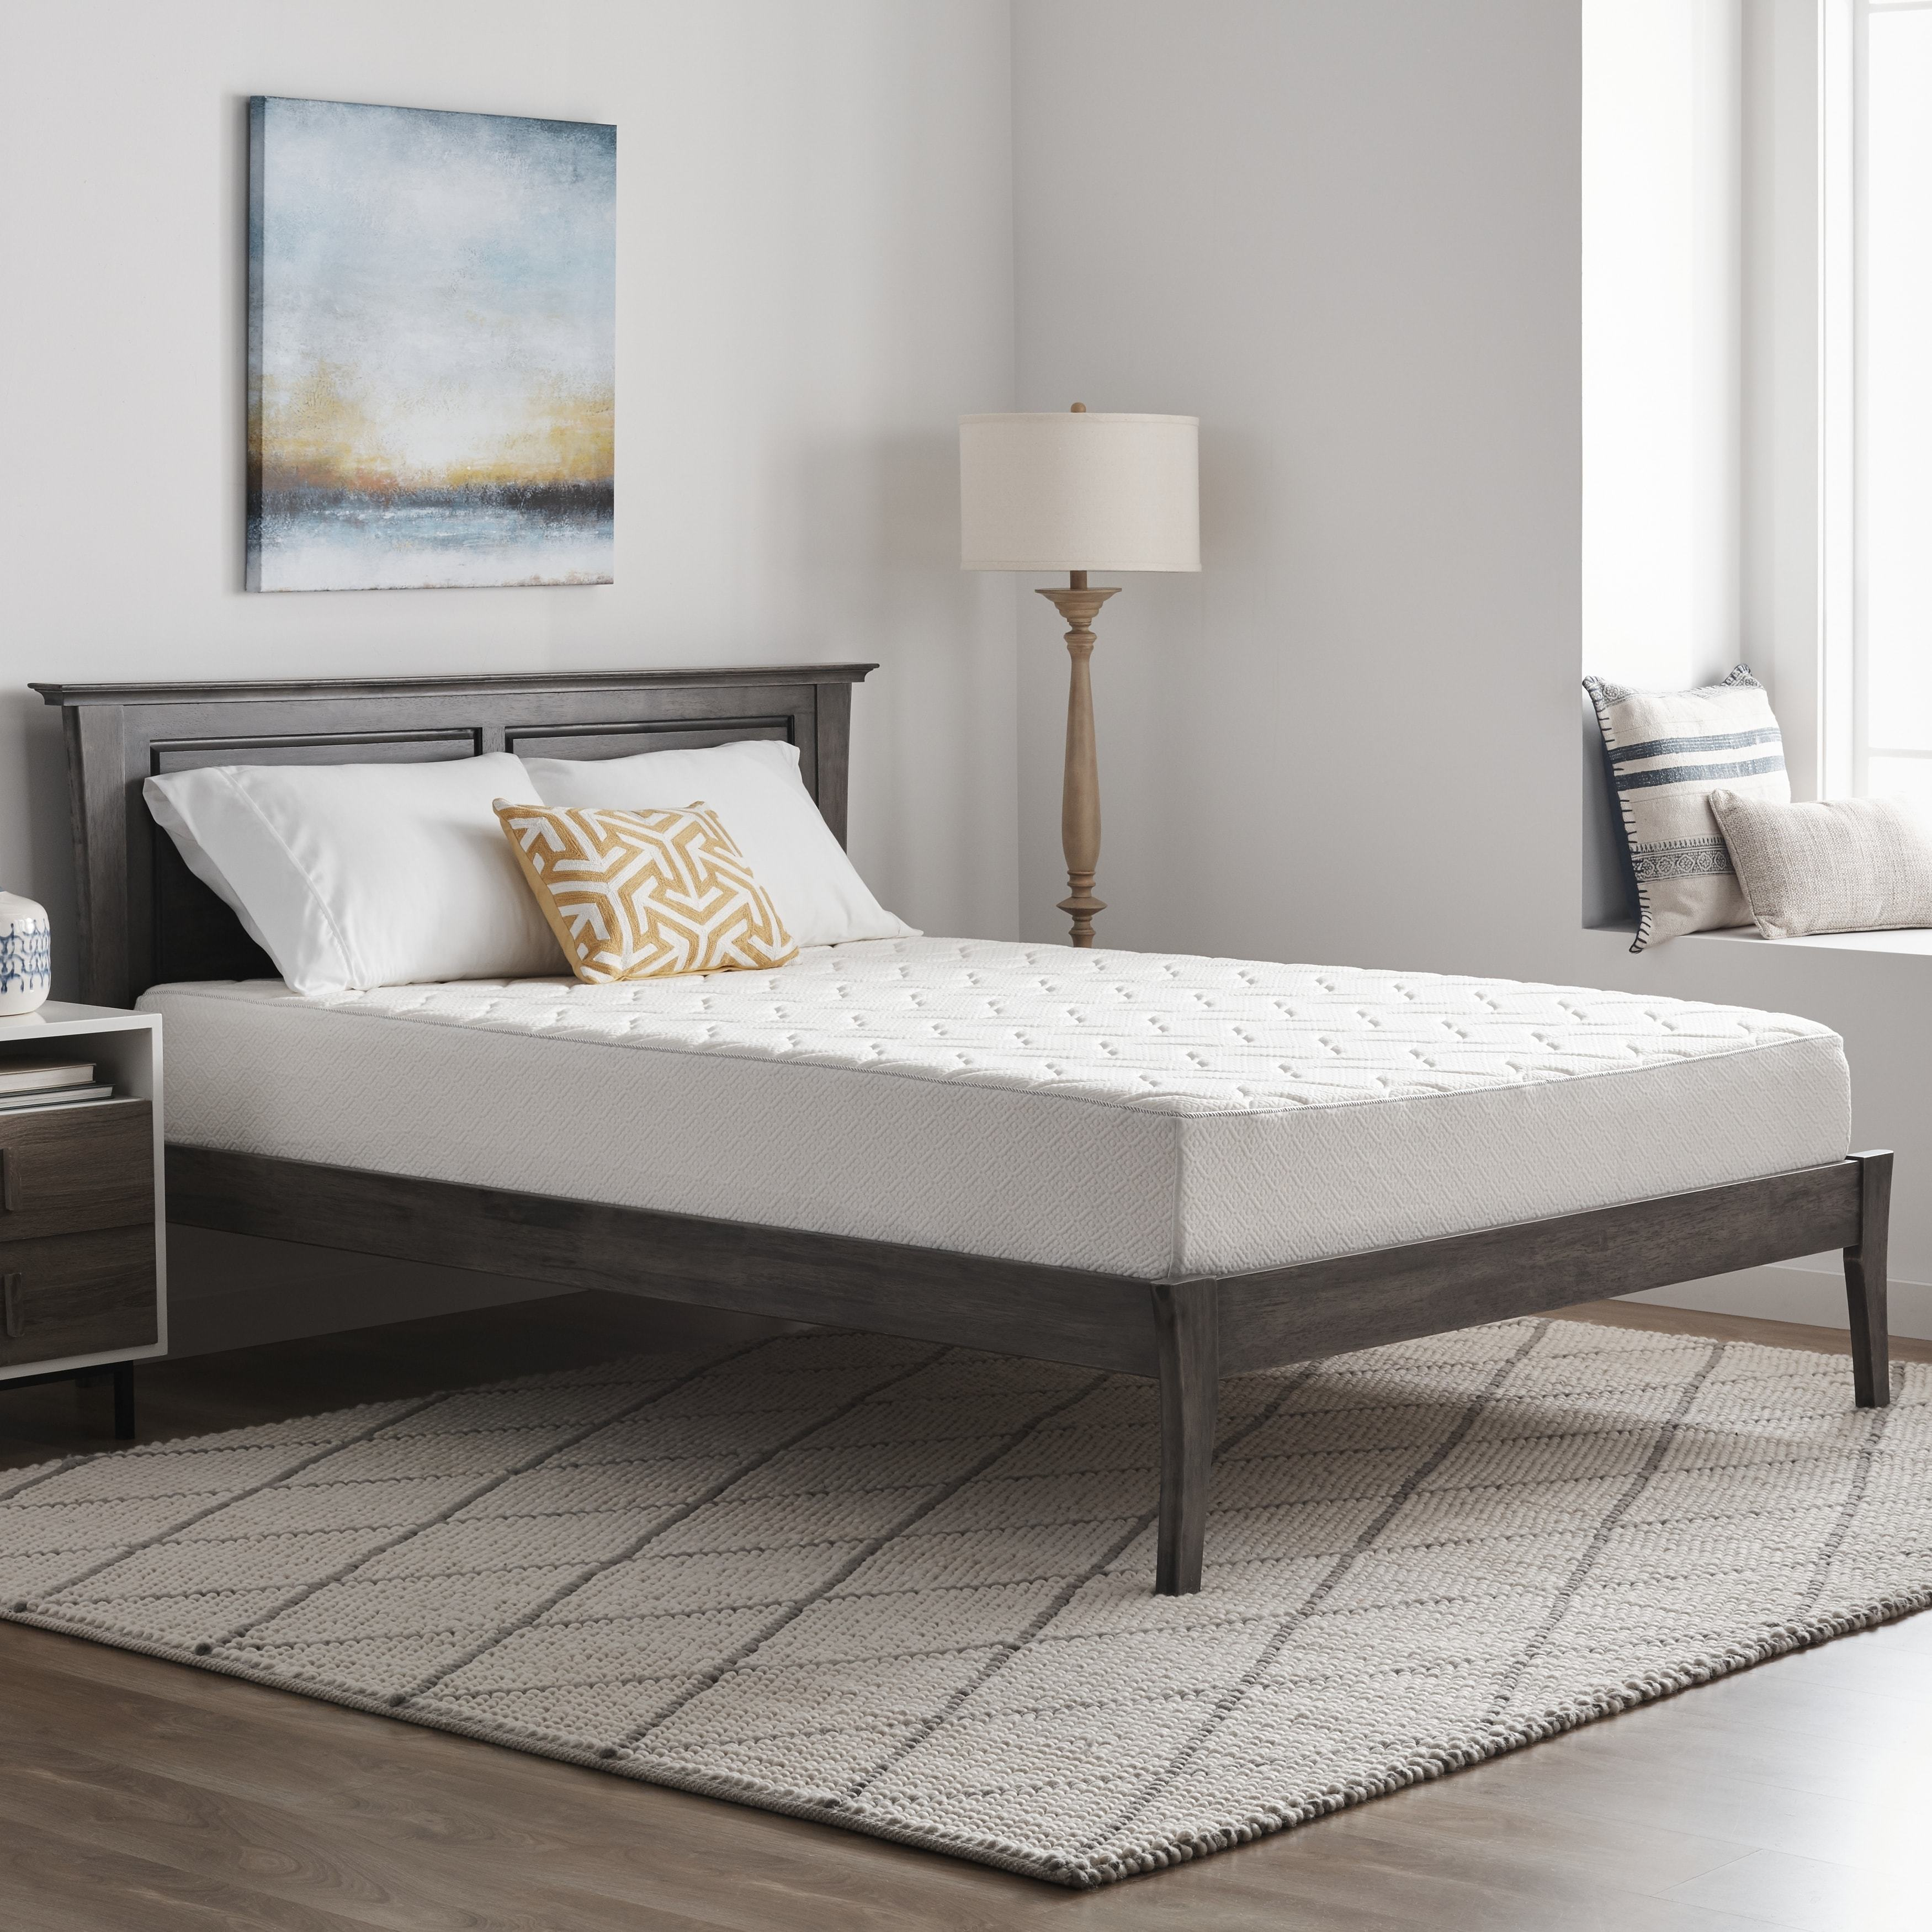 Furniture And Mattress Ers Best Image Middleburgarts